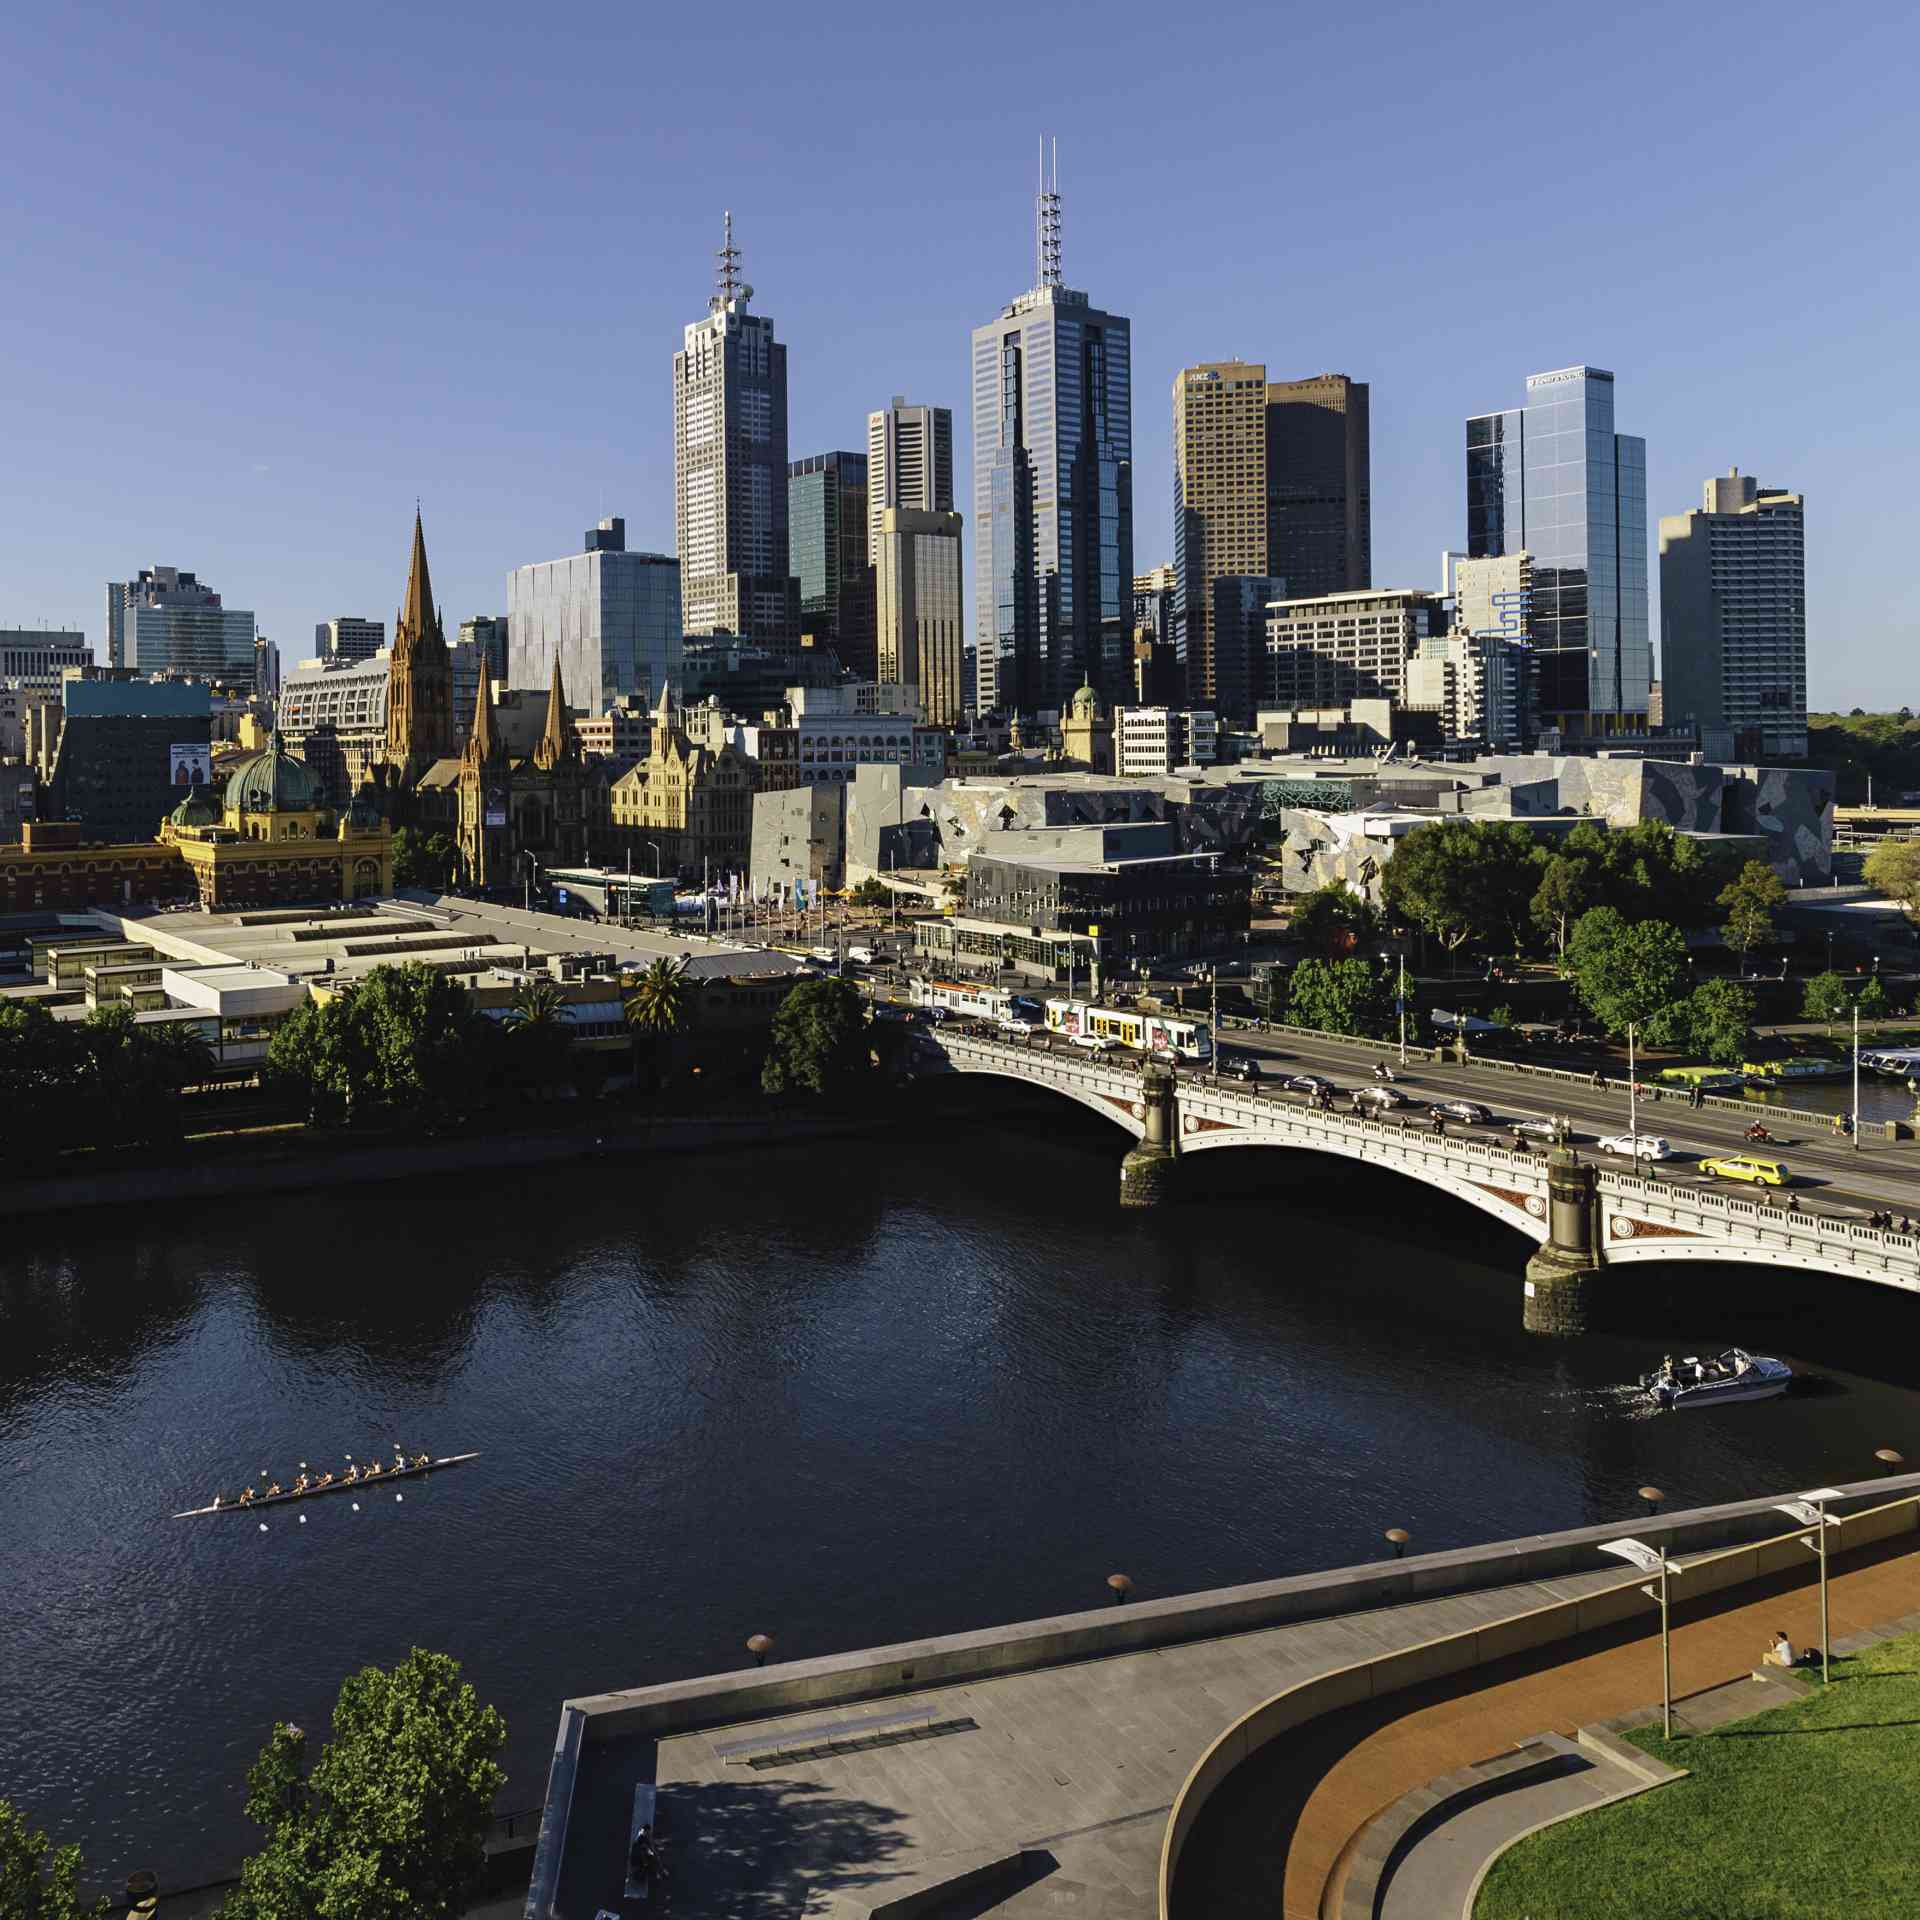 The city of Melbourne, Victoria by Visit Victoria